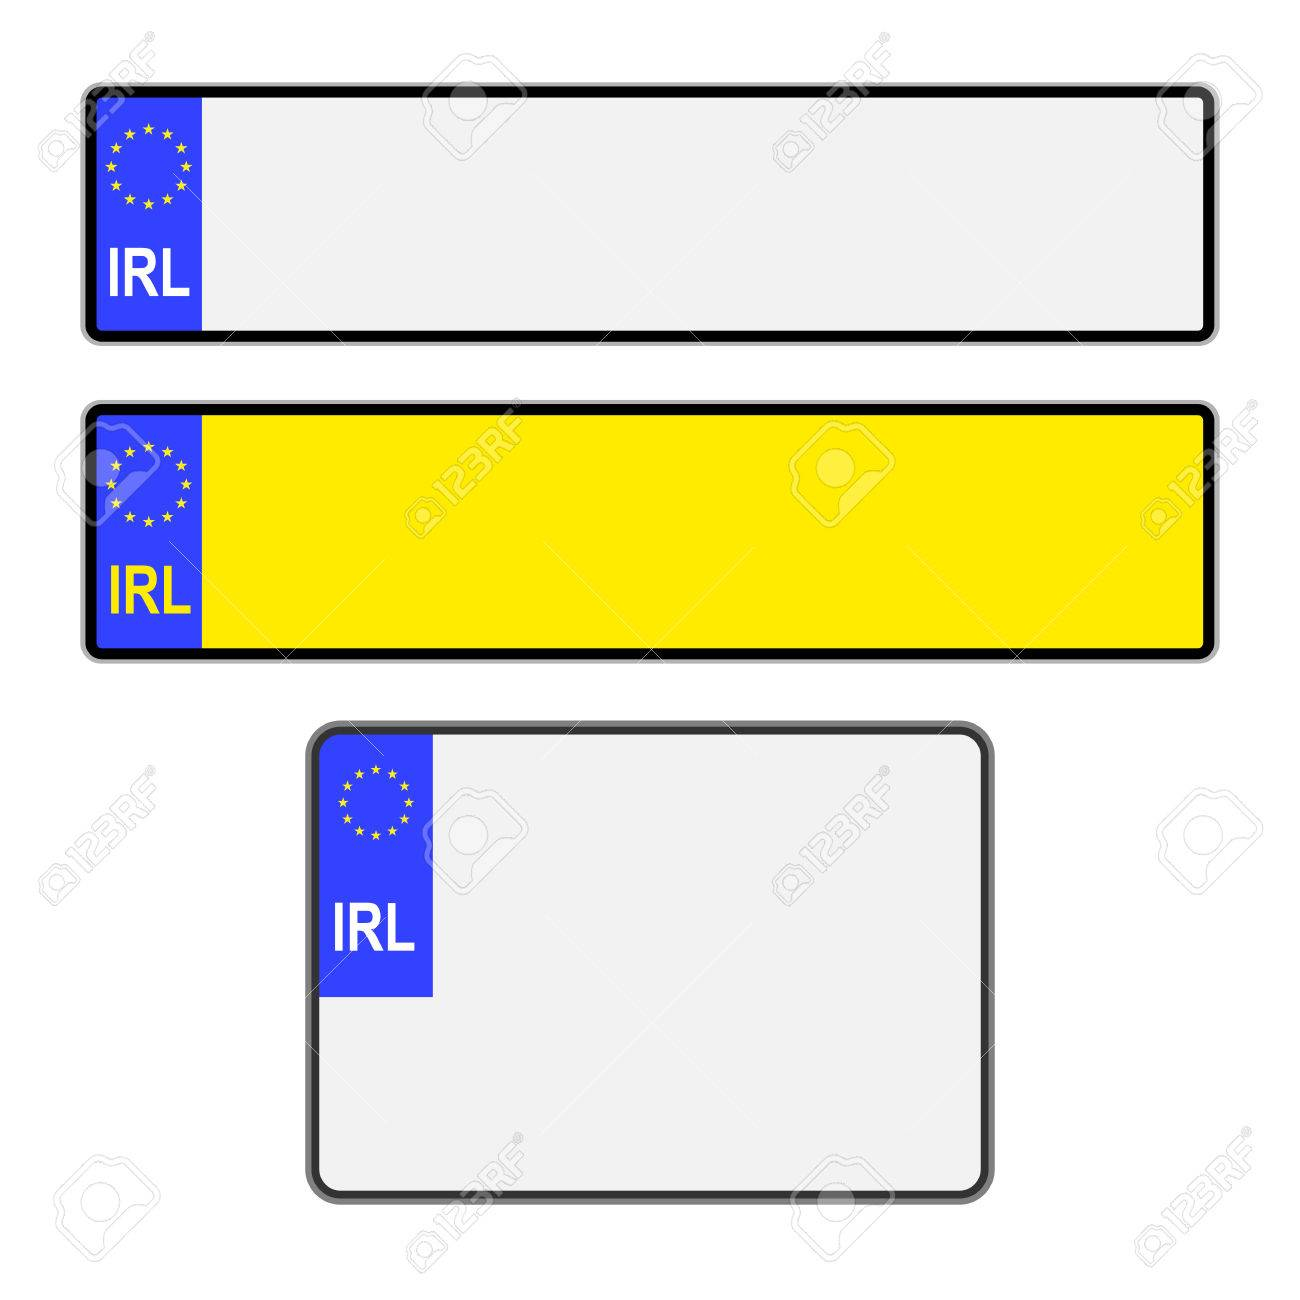 Blank Southern Ireland vehicle licence number plates in different styles vector - 63889916